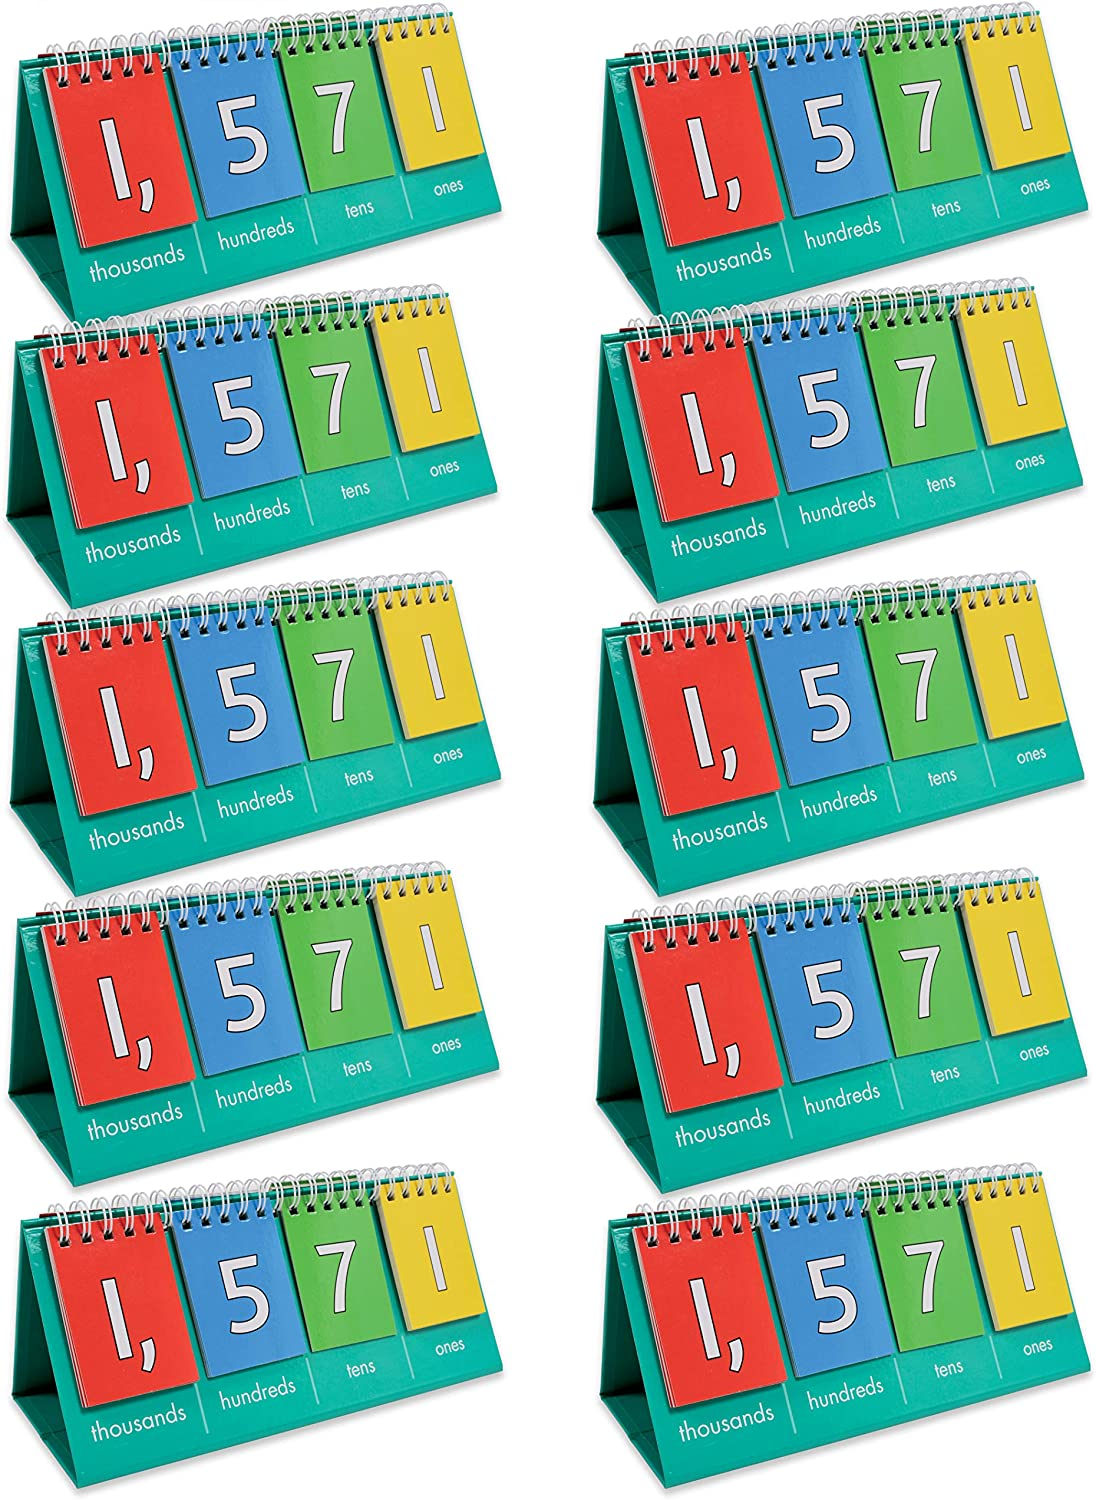 Edx Education Student Place Value Flip Chart - Thousands - Learn to Count by Ones, Tens, Hundreds and Thousands: Office Products